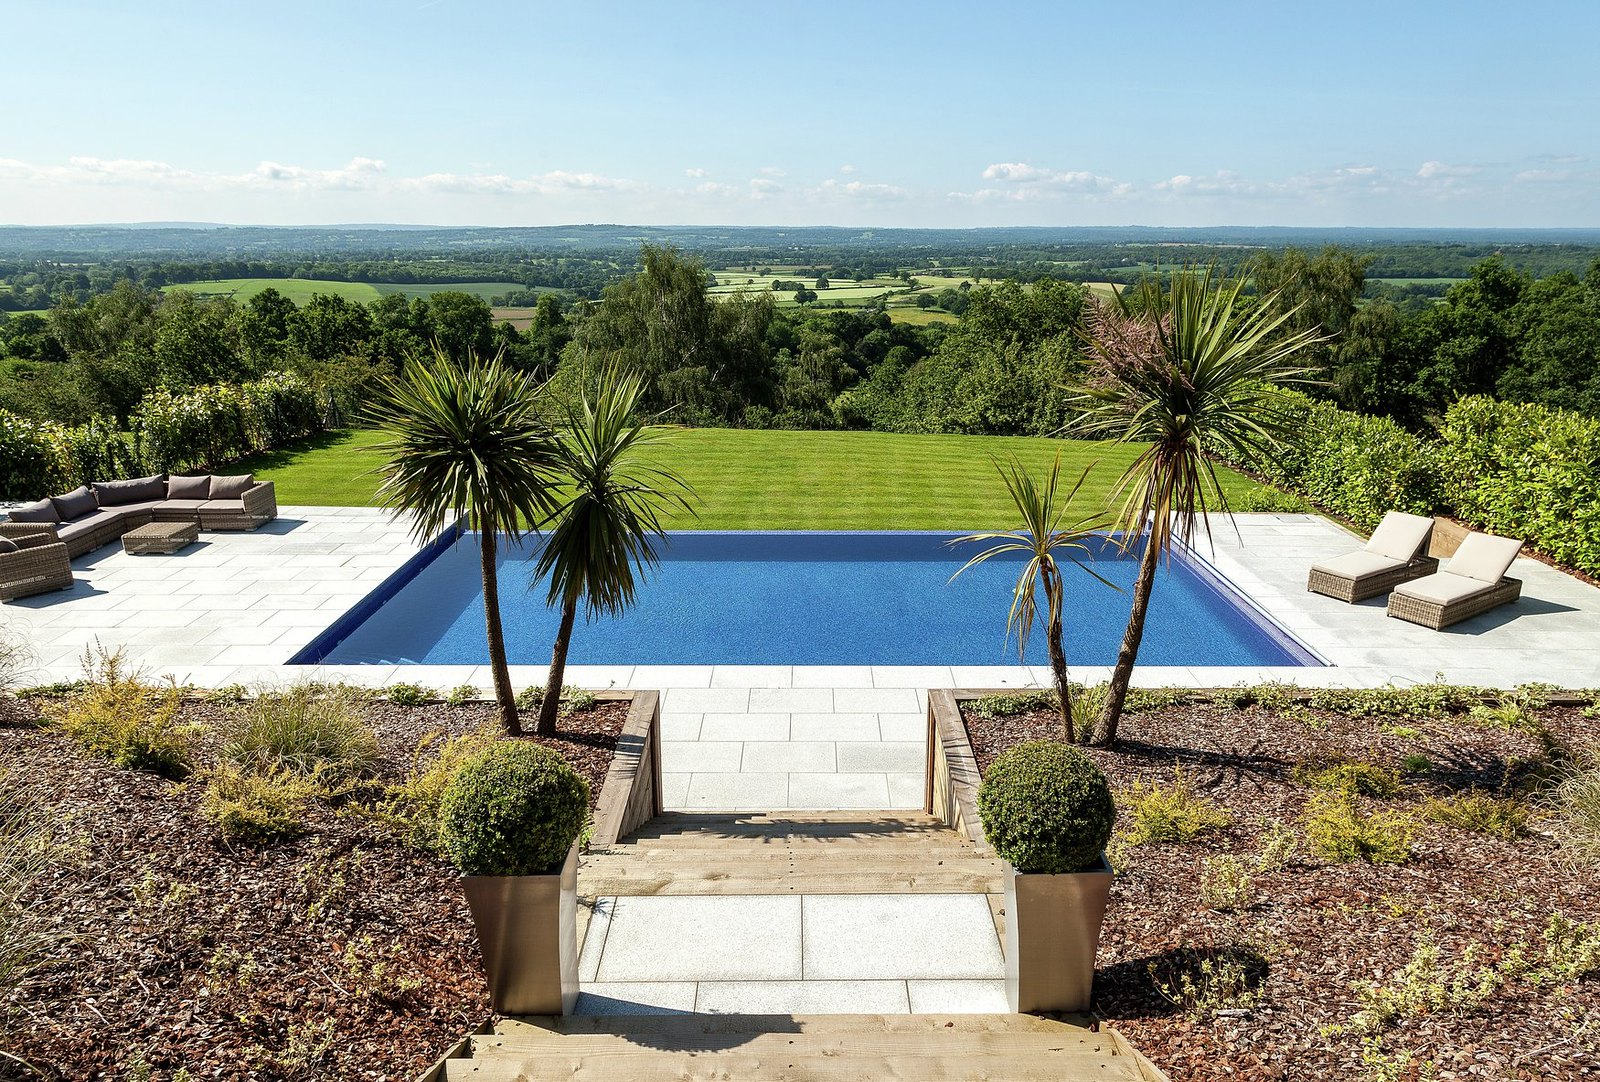 trevereux-hill-oxted-our-work-private-clients-ascot-design-view8.jpg